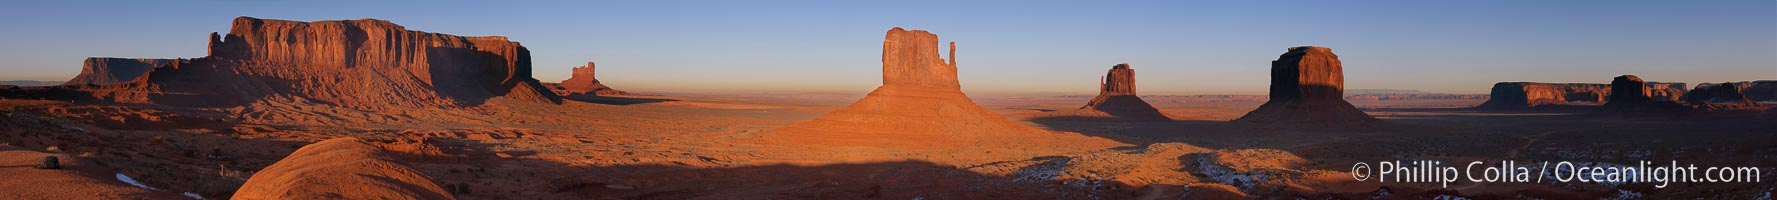 Monument Valley panorama. Monument Valley, Arizona, USA, natural history stock photograph, photo id 19531